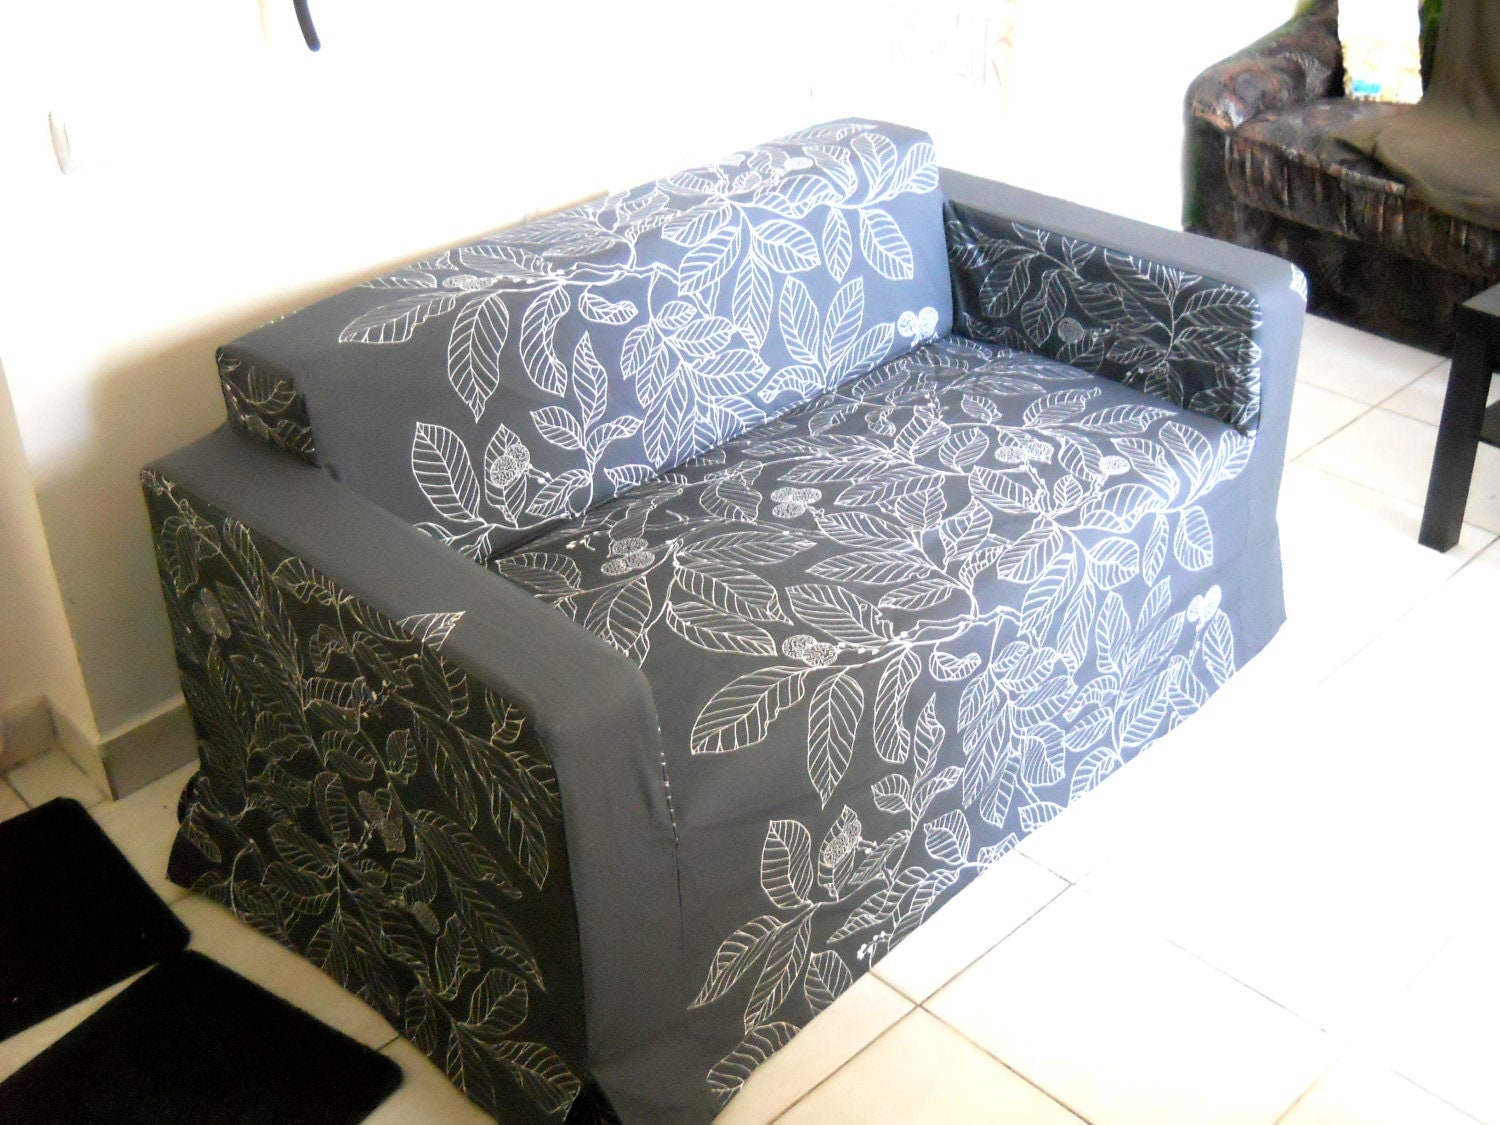 custom chair covers ikea singing elmo potty made cover for klobo sofa from nice leaf